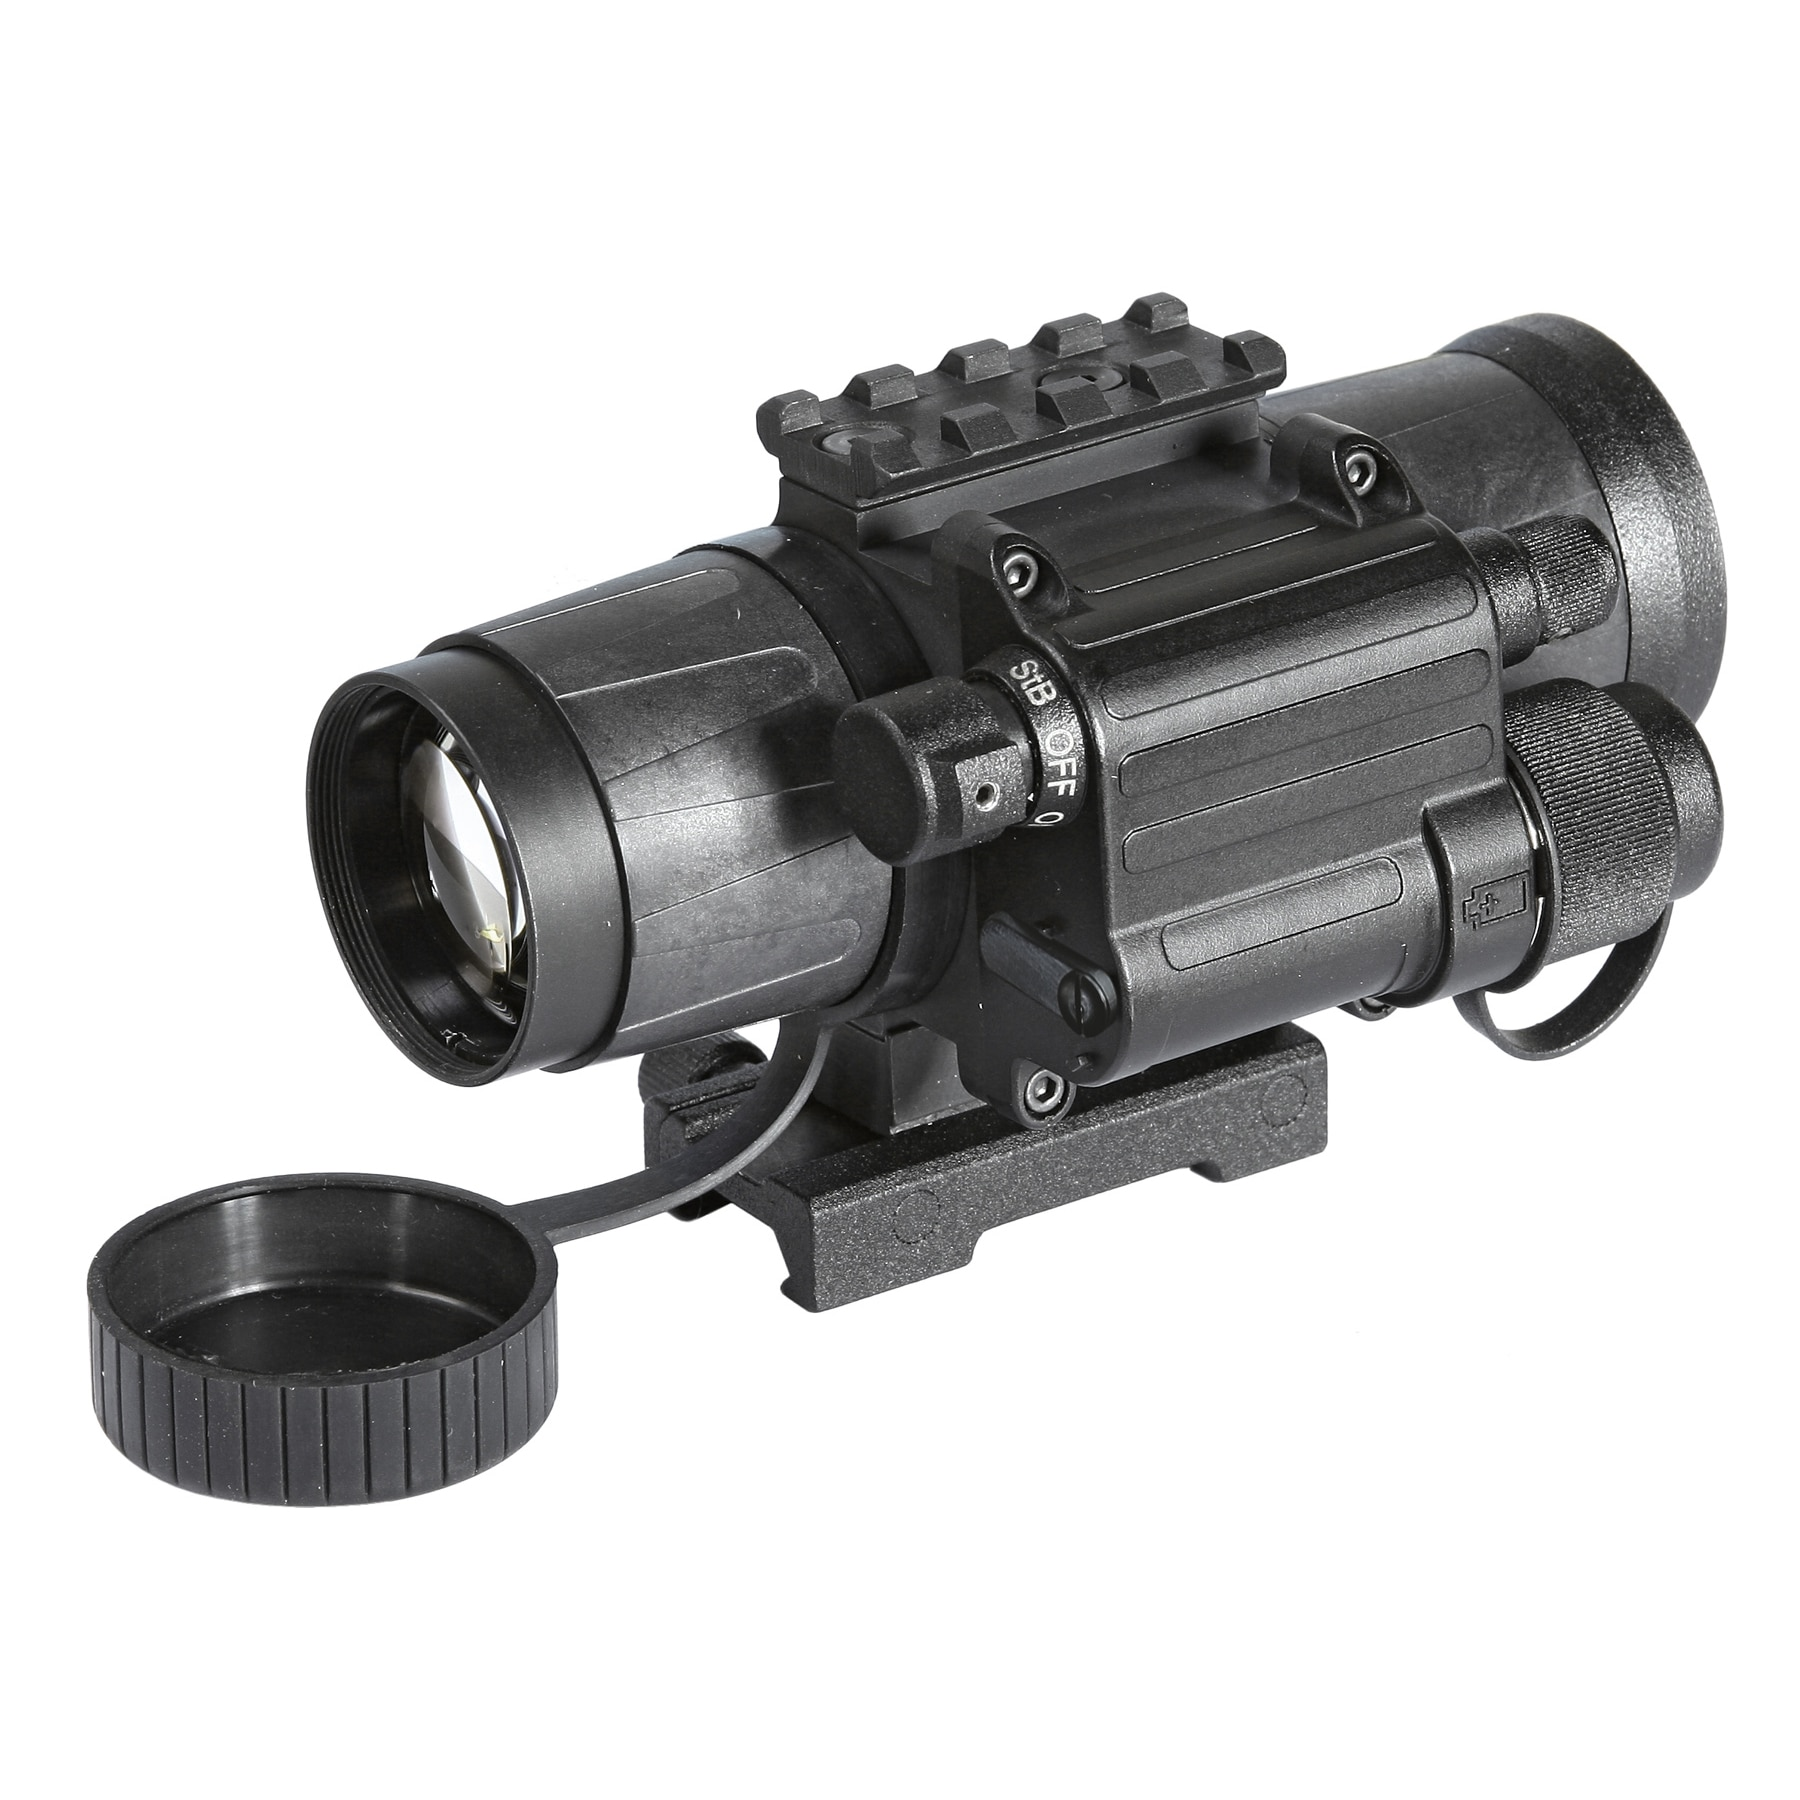 Armasight CO-Mini-3 Alpha MG Night Vision Mini Clip-On System with Manual Gain control Gen 3 Alpha Grade, 64-72 lp mm IIT by Overstock